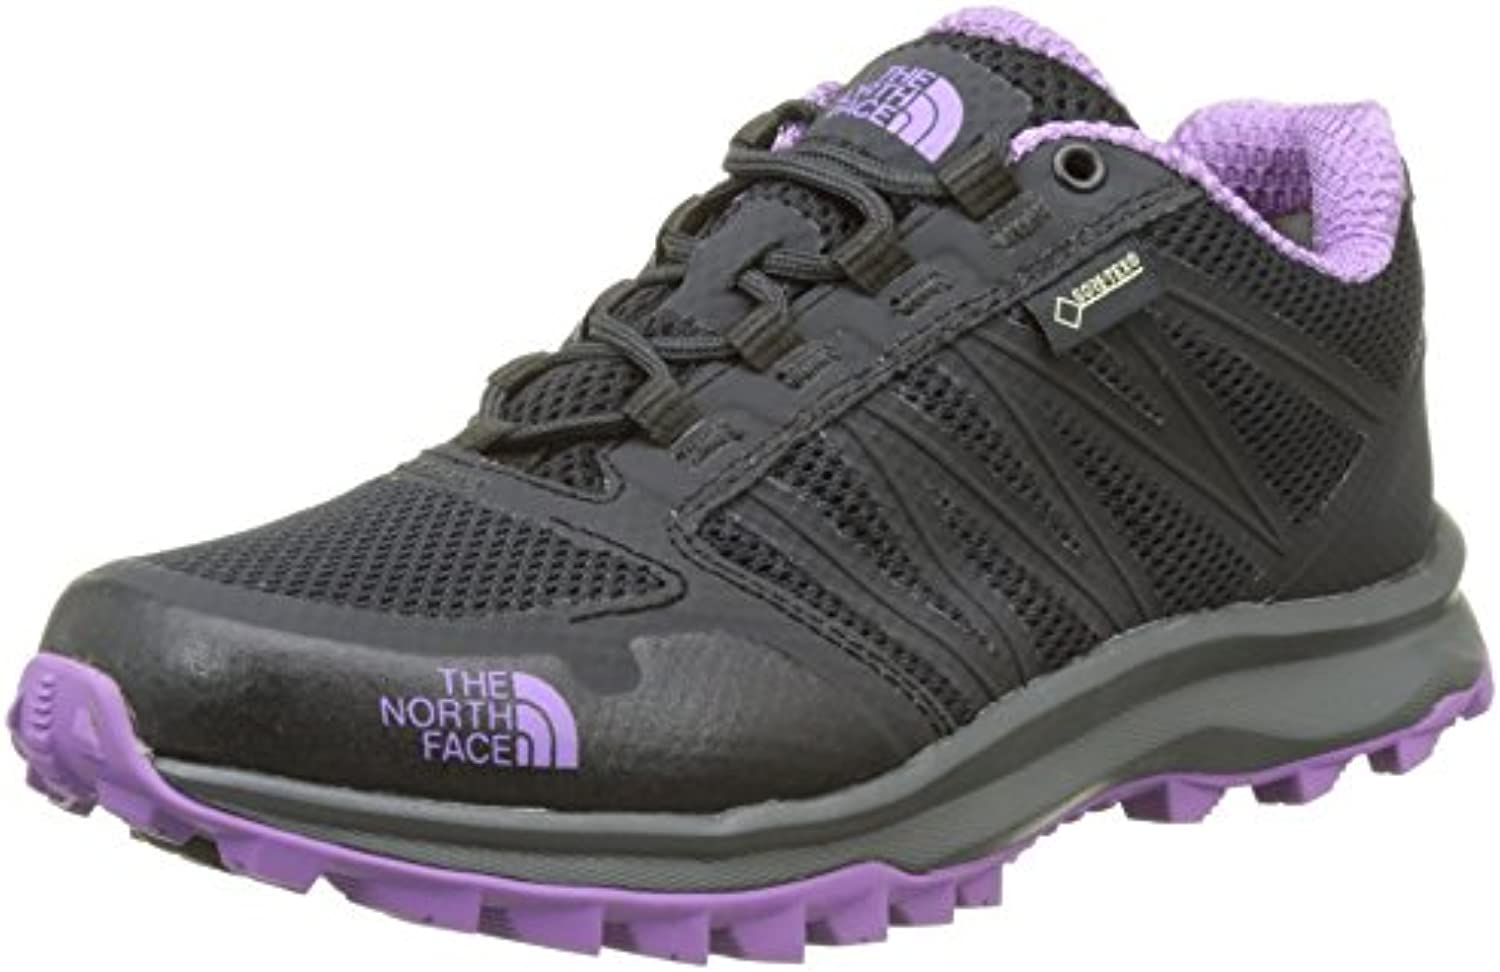 The North Face Litewave Fastpack Gore-Tex, Scarpe da Ginnastica Ginnastica Ginnastica Donna | Ricca consegna puntuale  79e531